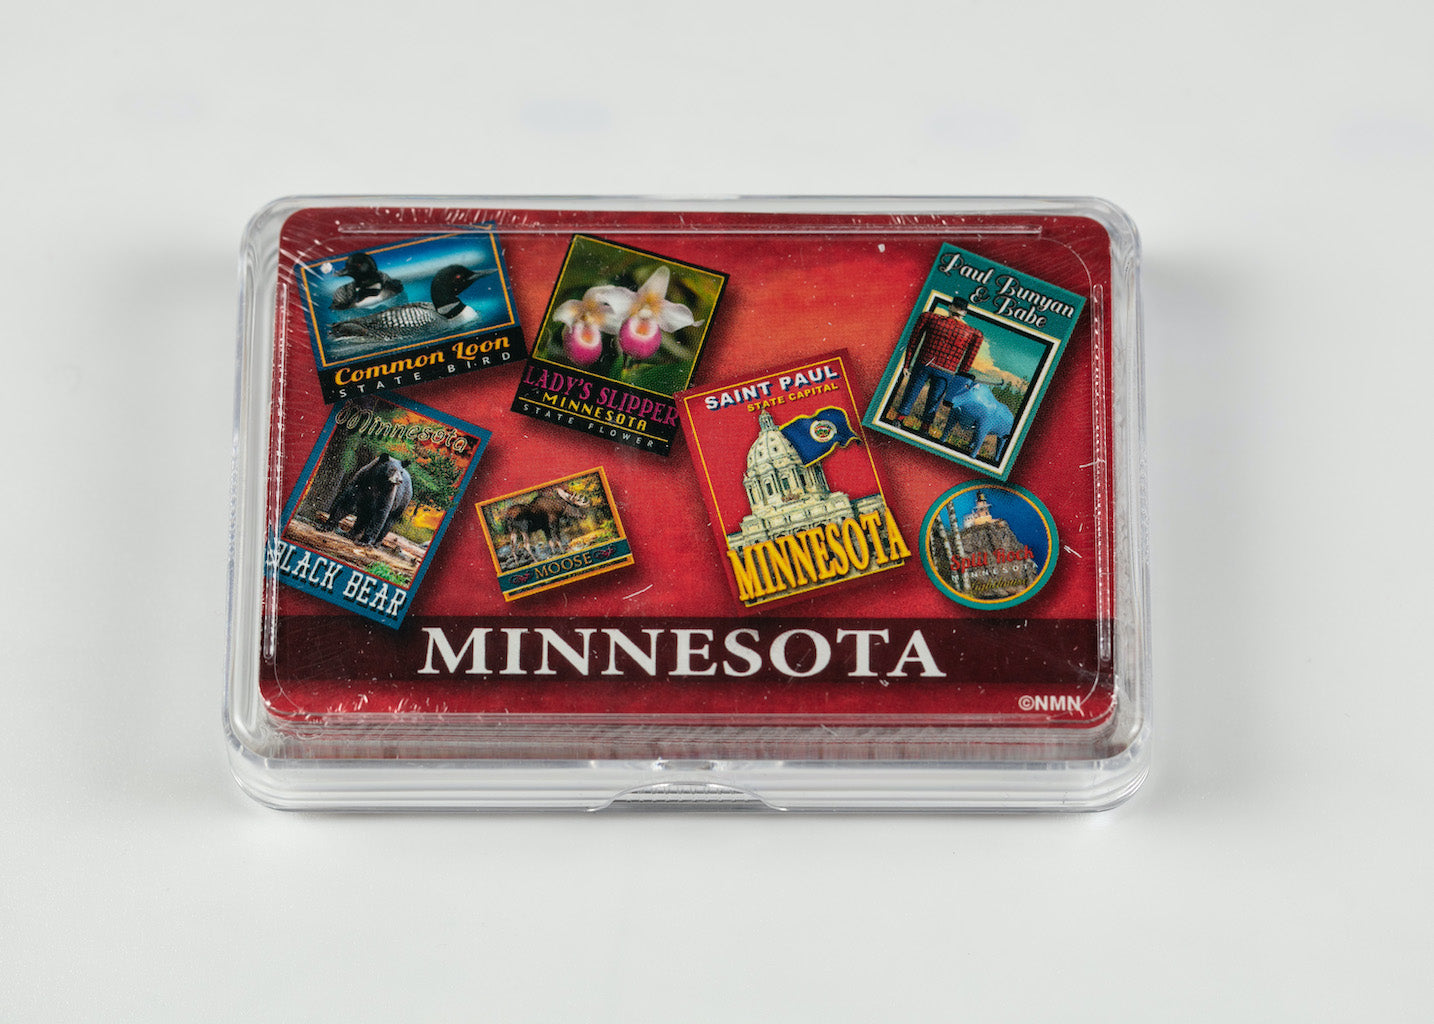 MINNESOTA RED POSTER ART PLAYING CARDS